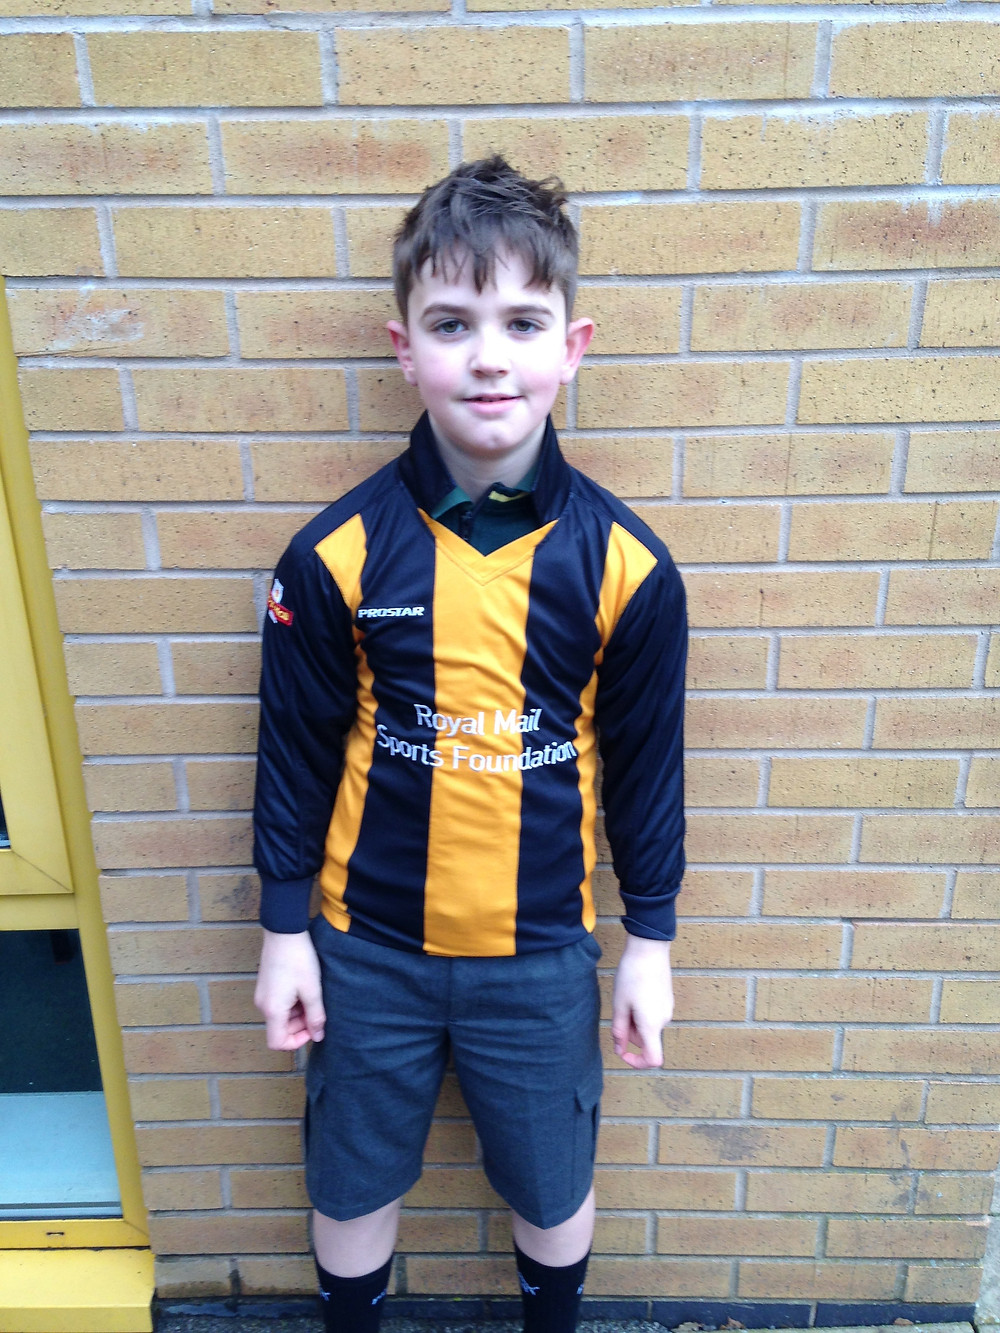 Well done to Mr Waters' football team and our man of the match on their win last night.